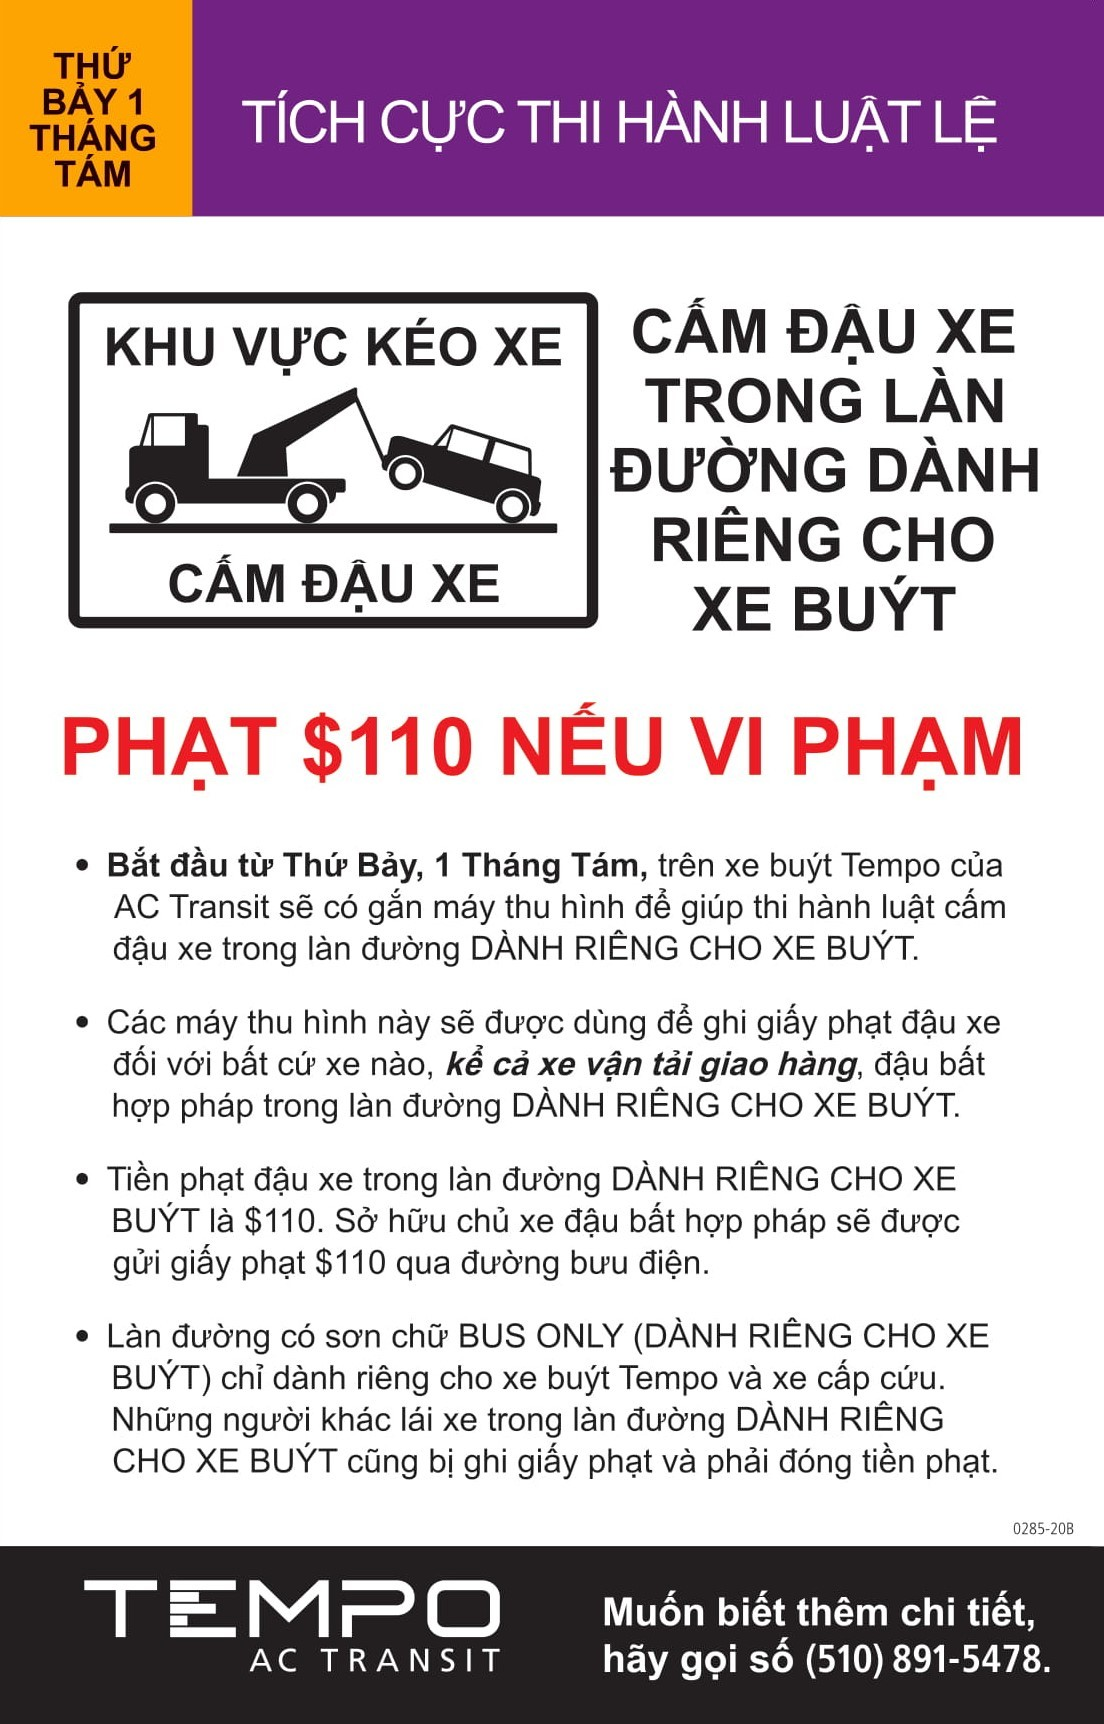 AC Transit notice about enforcement of the bus only lanes in Vietnamese